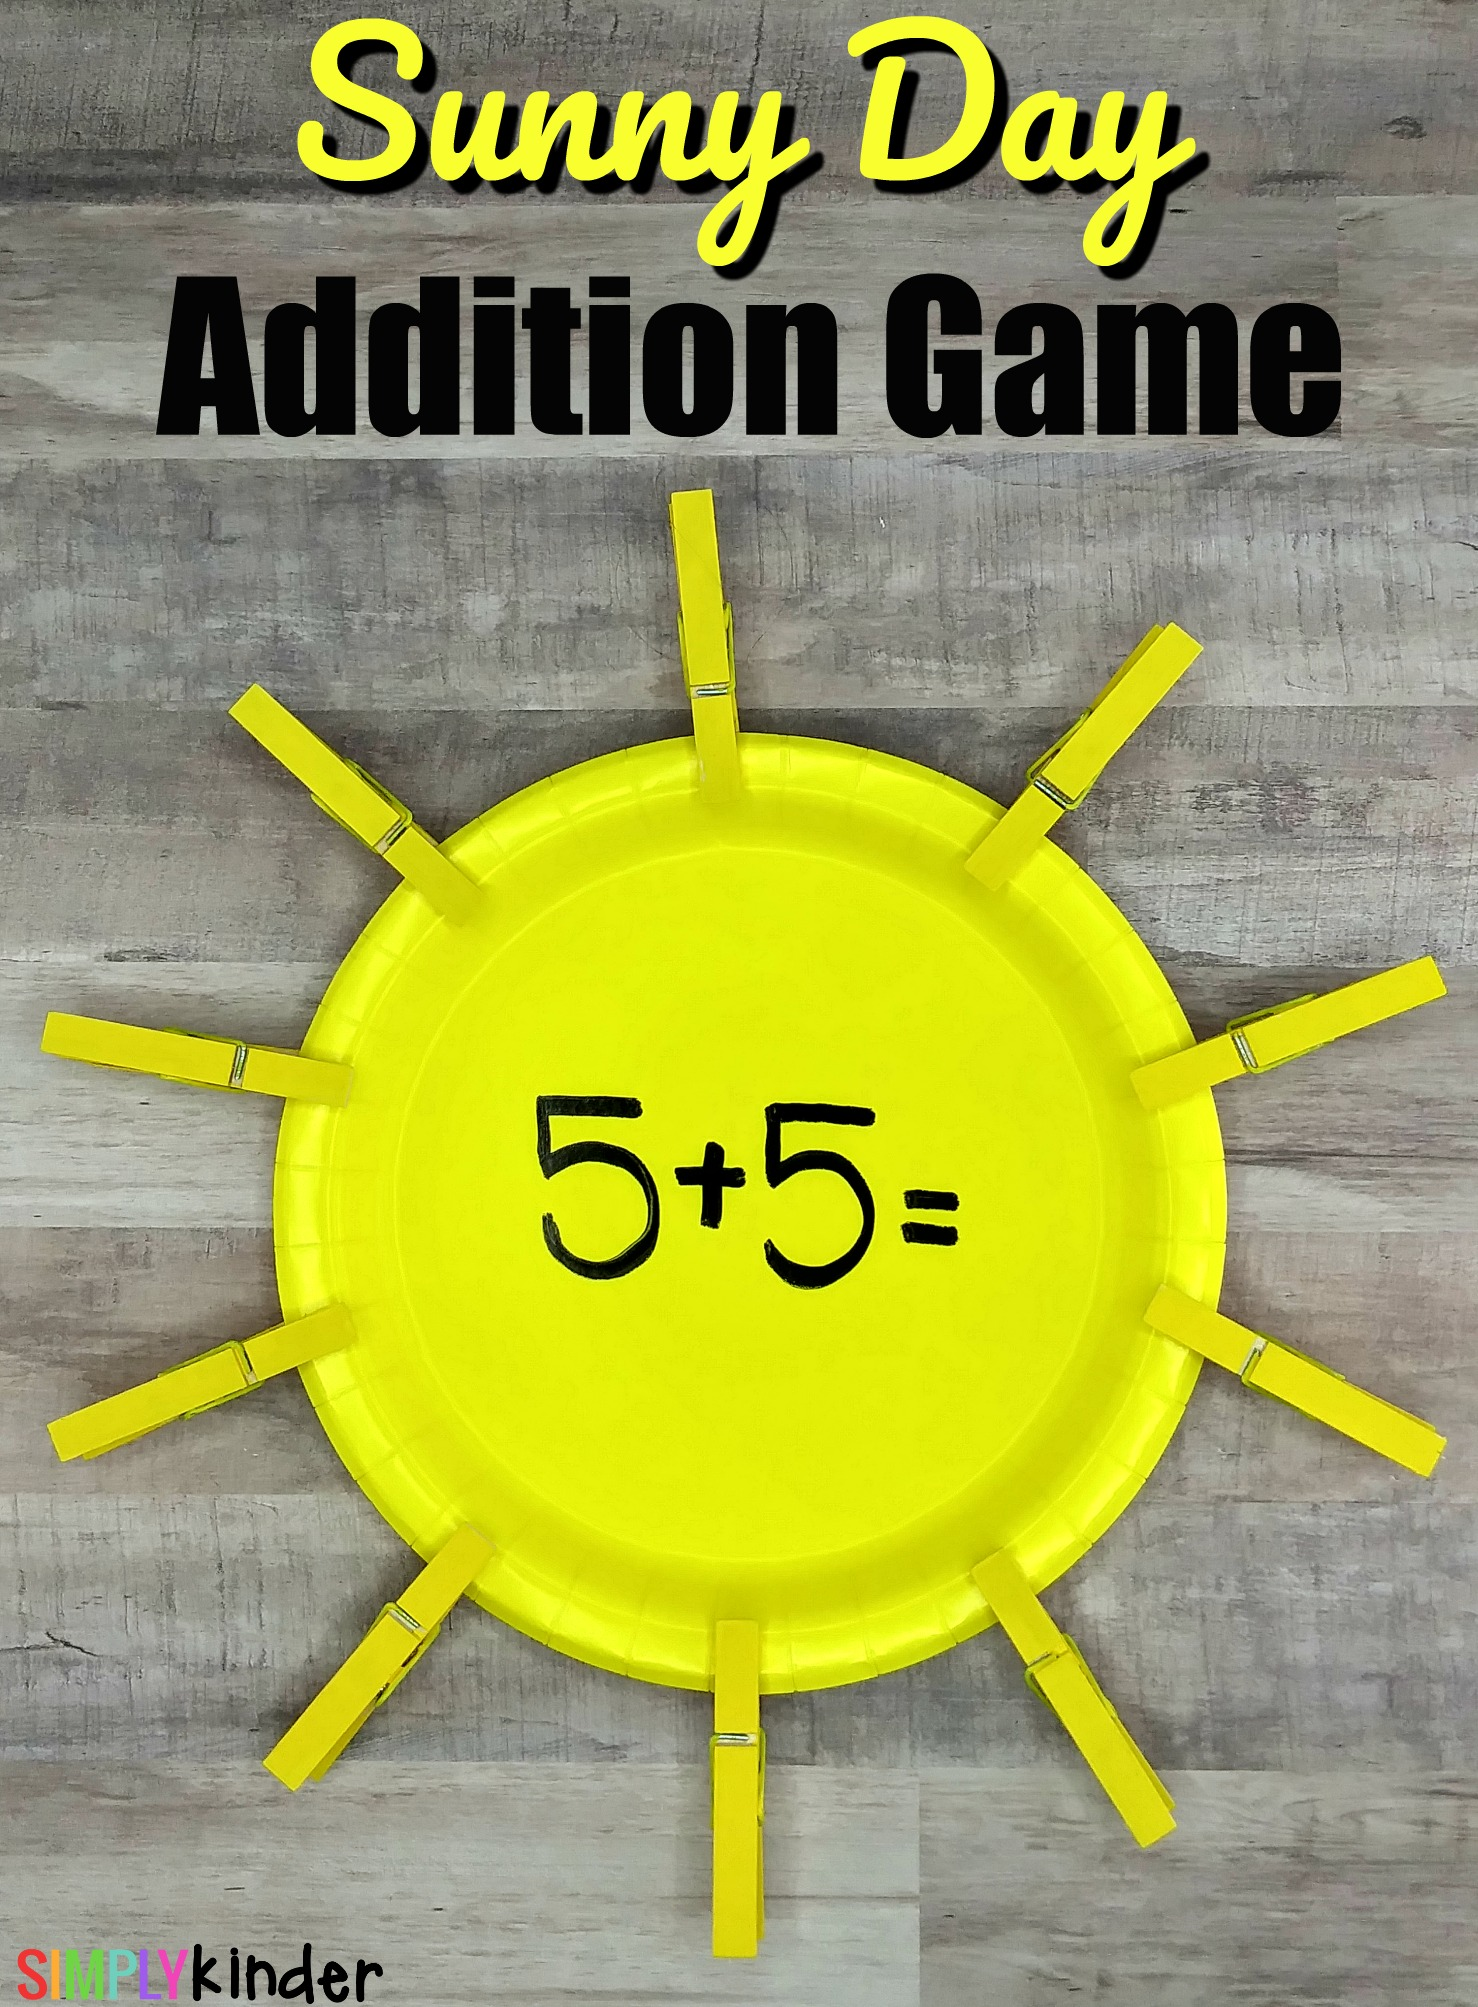 Sunny Day Addition Game